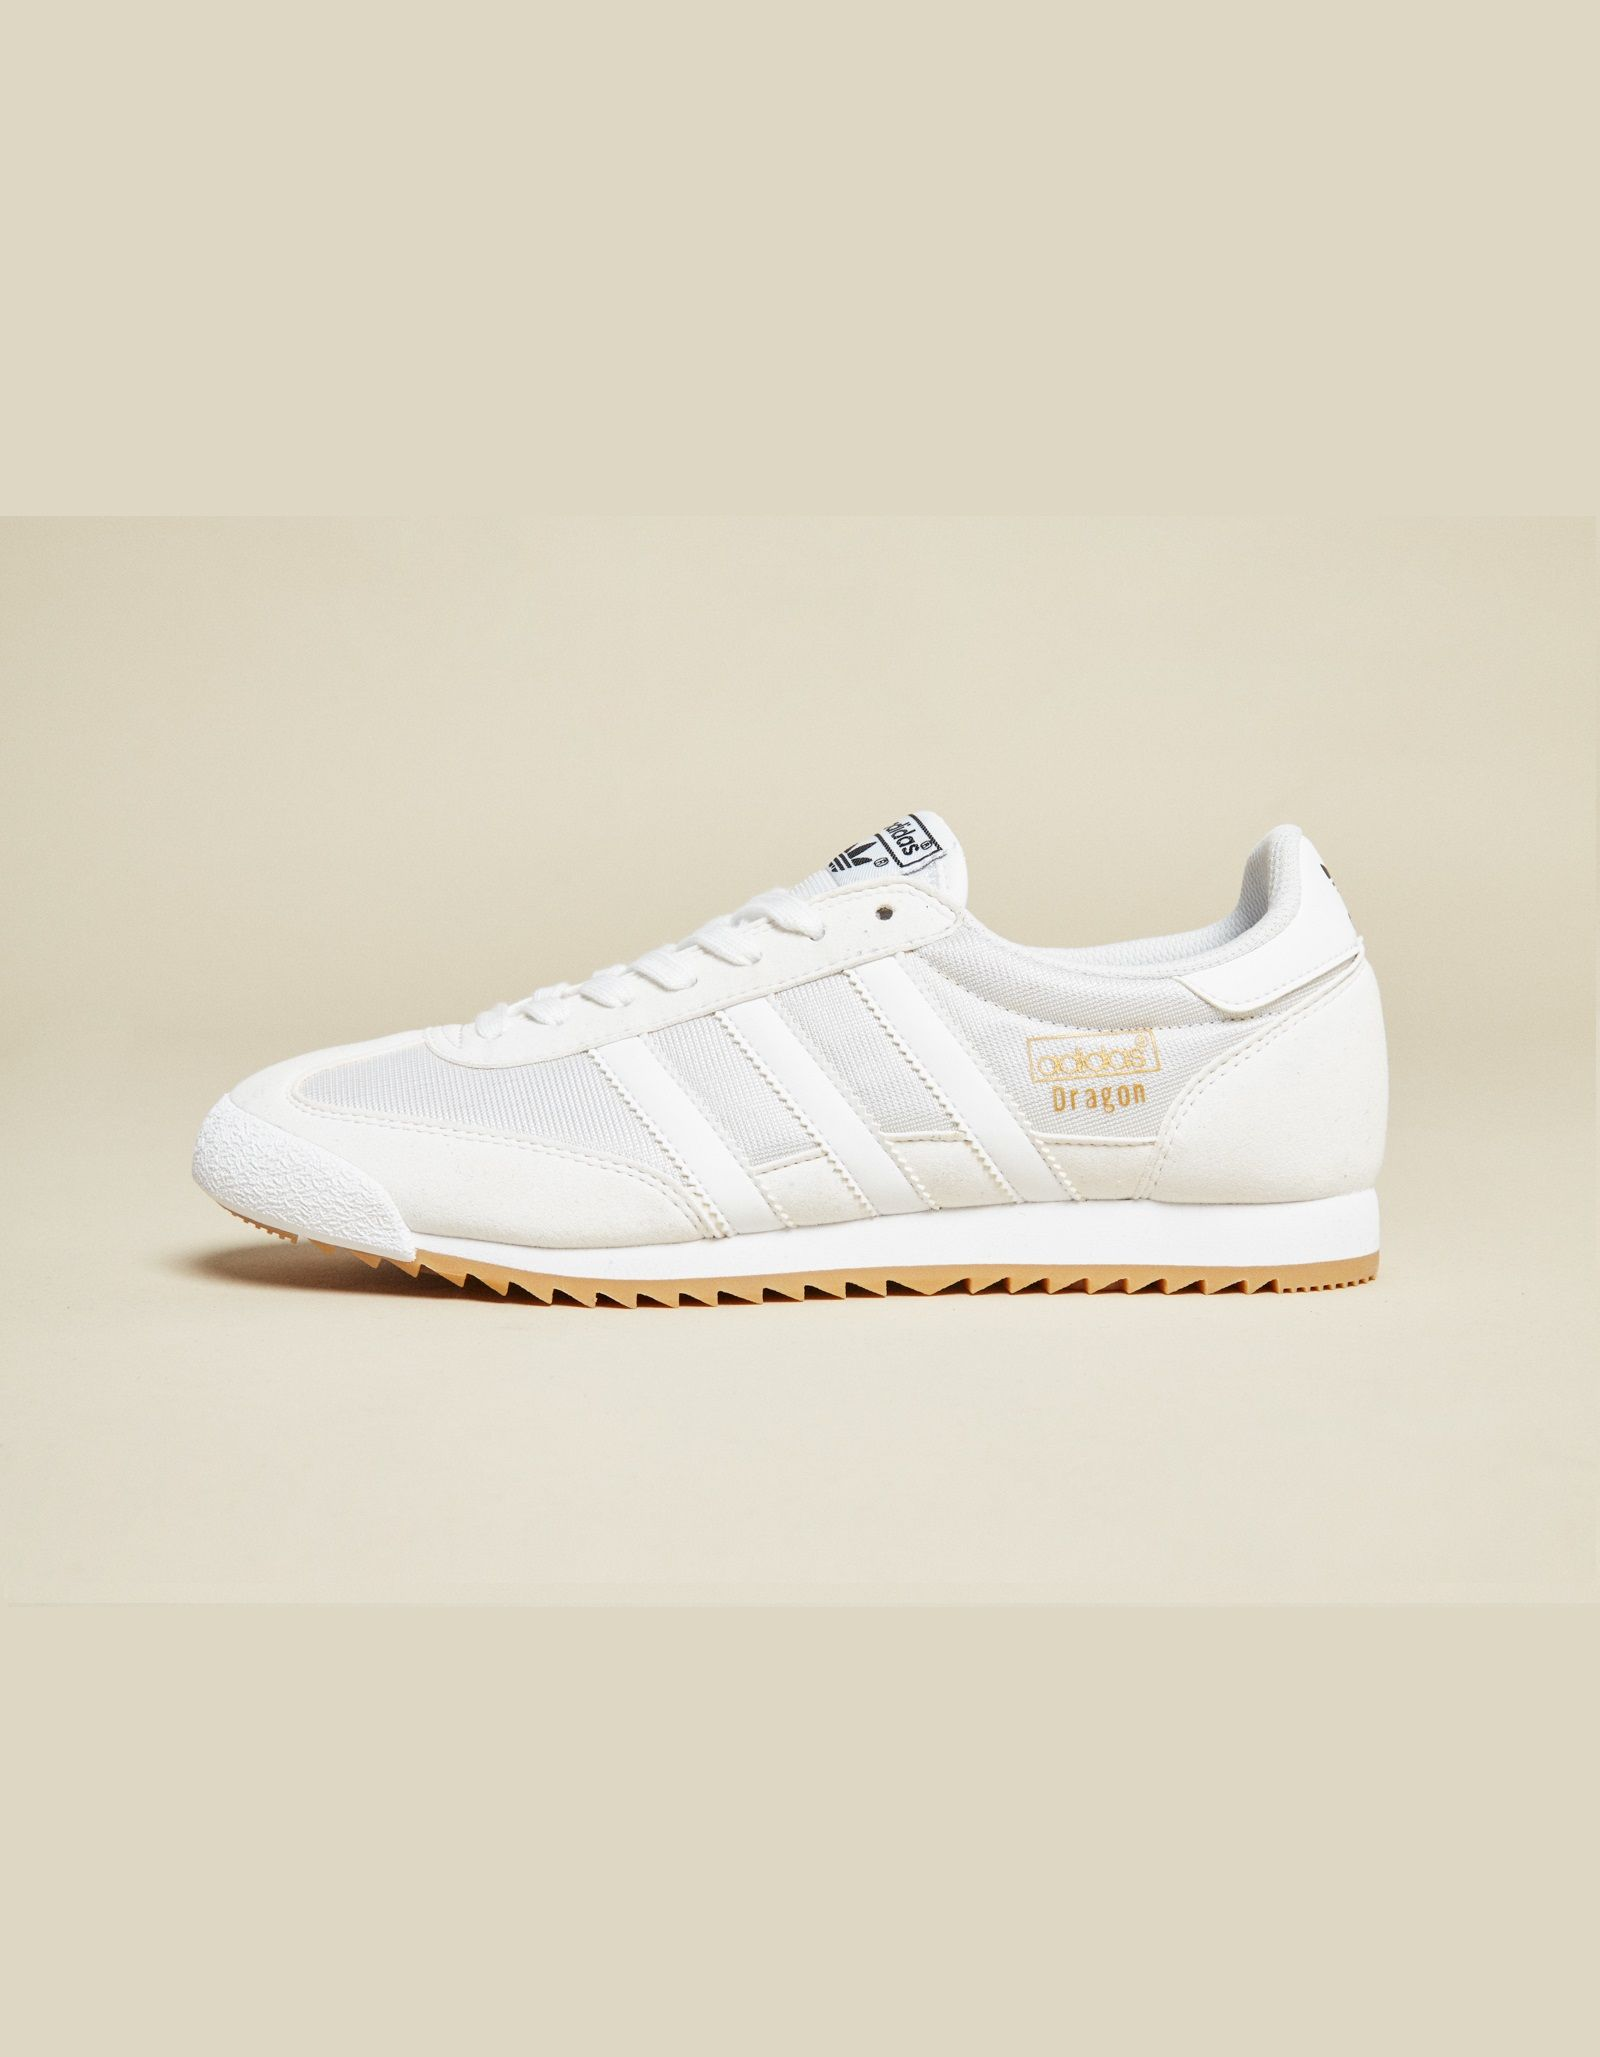 adidas Originals Dragon: White | Adidas originals dragon